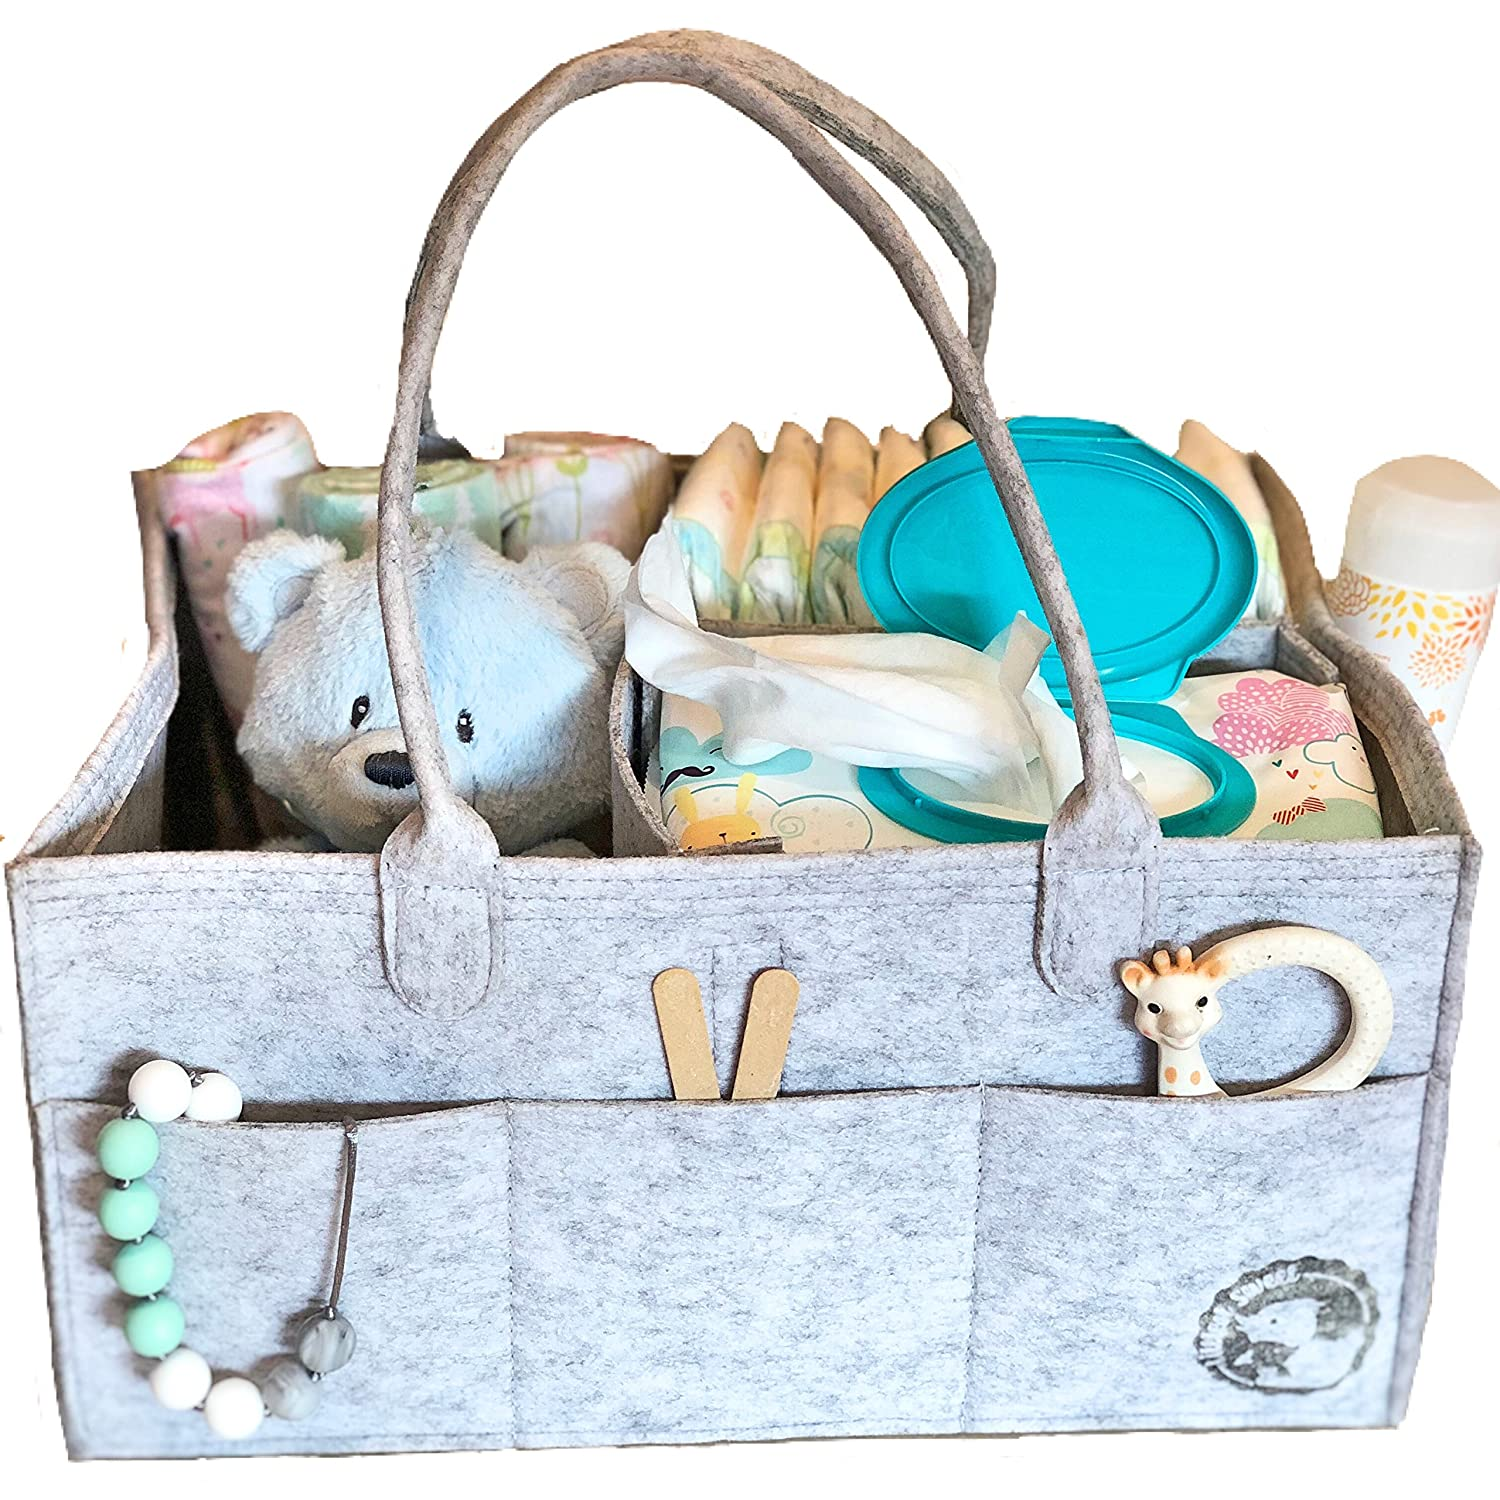 Diaper Caddy By Littlest Sweet: Nursery and Car Organizer Also Used to Hold Snacks Toys And Pacifiers Large Pockets And Compartments Changing Table Bag Baby Diaper Stacker Bin Bibs Bottles